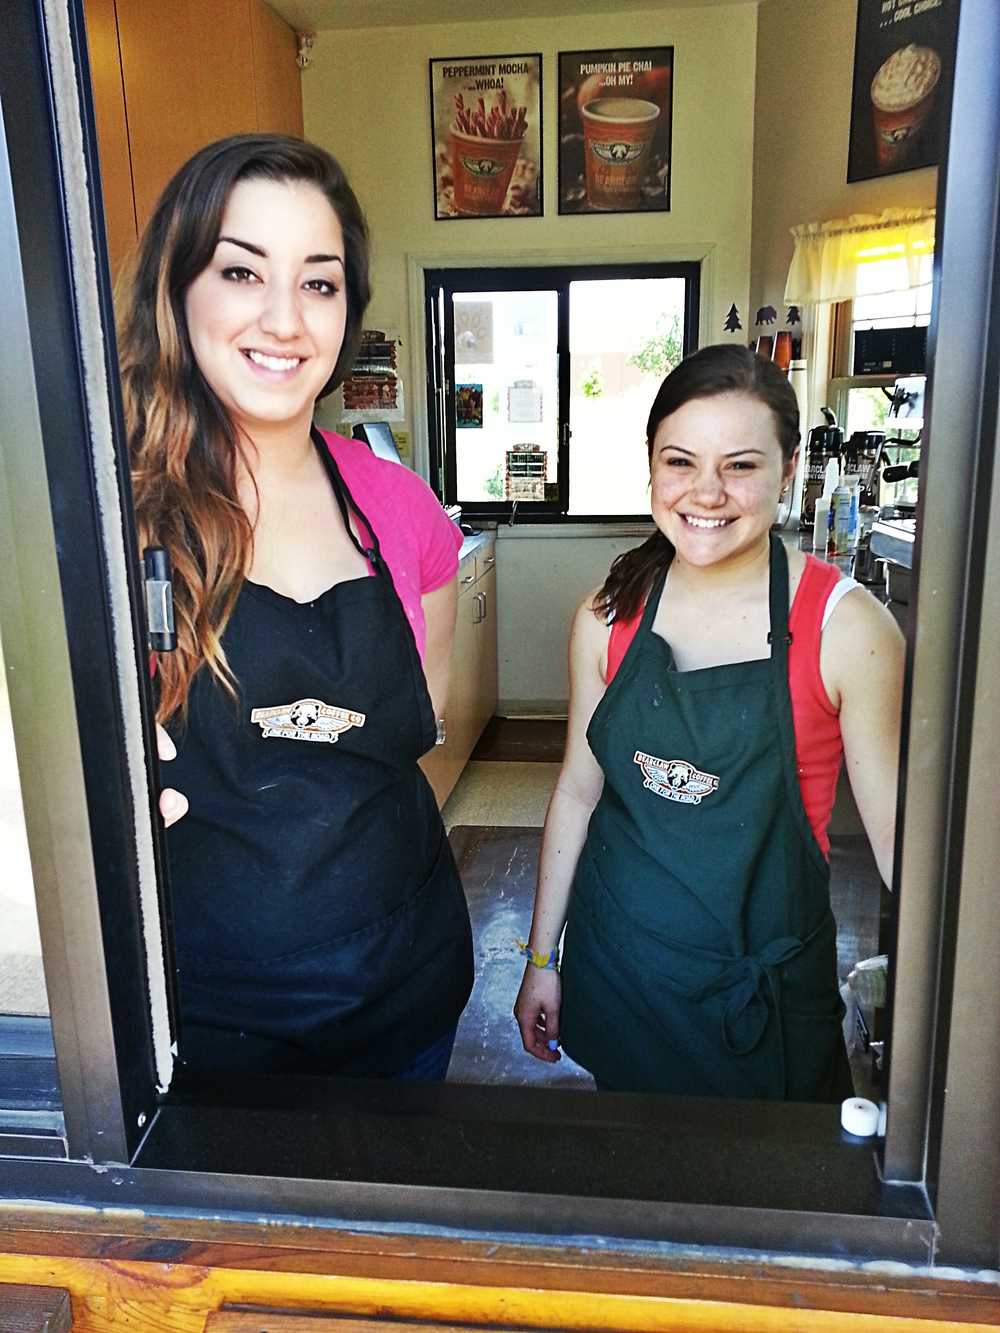 Brownstown Store_Baristas2.jpg